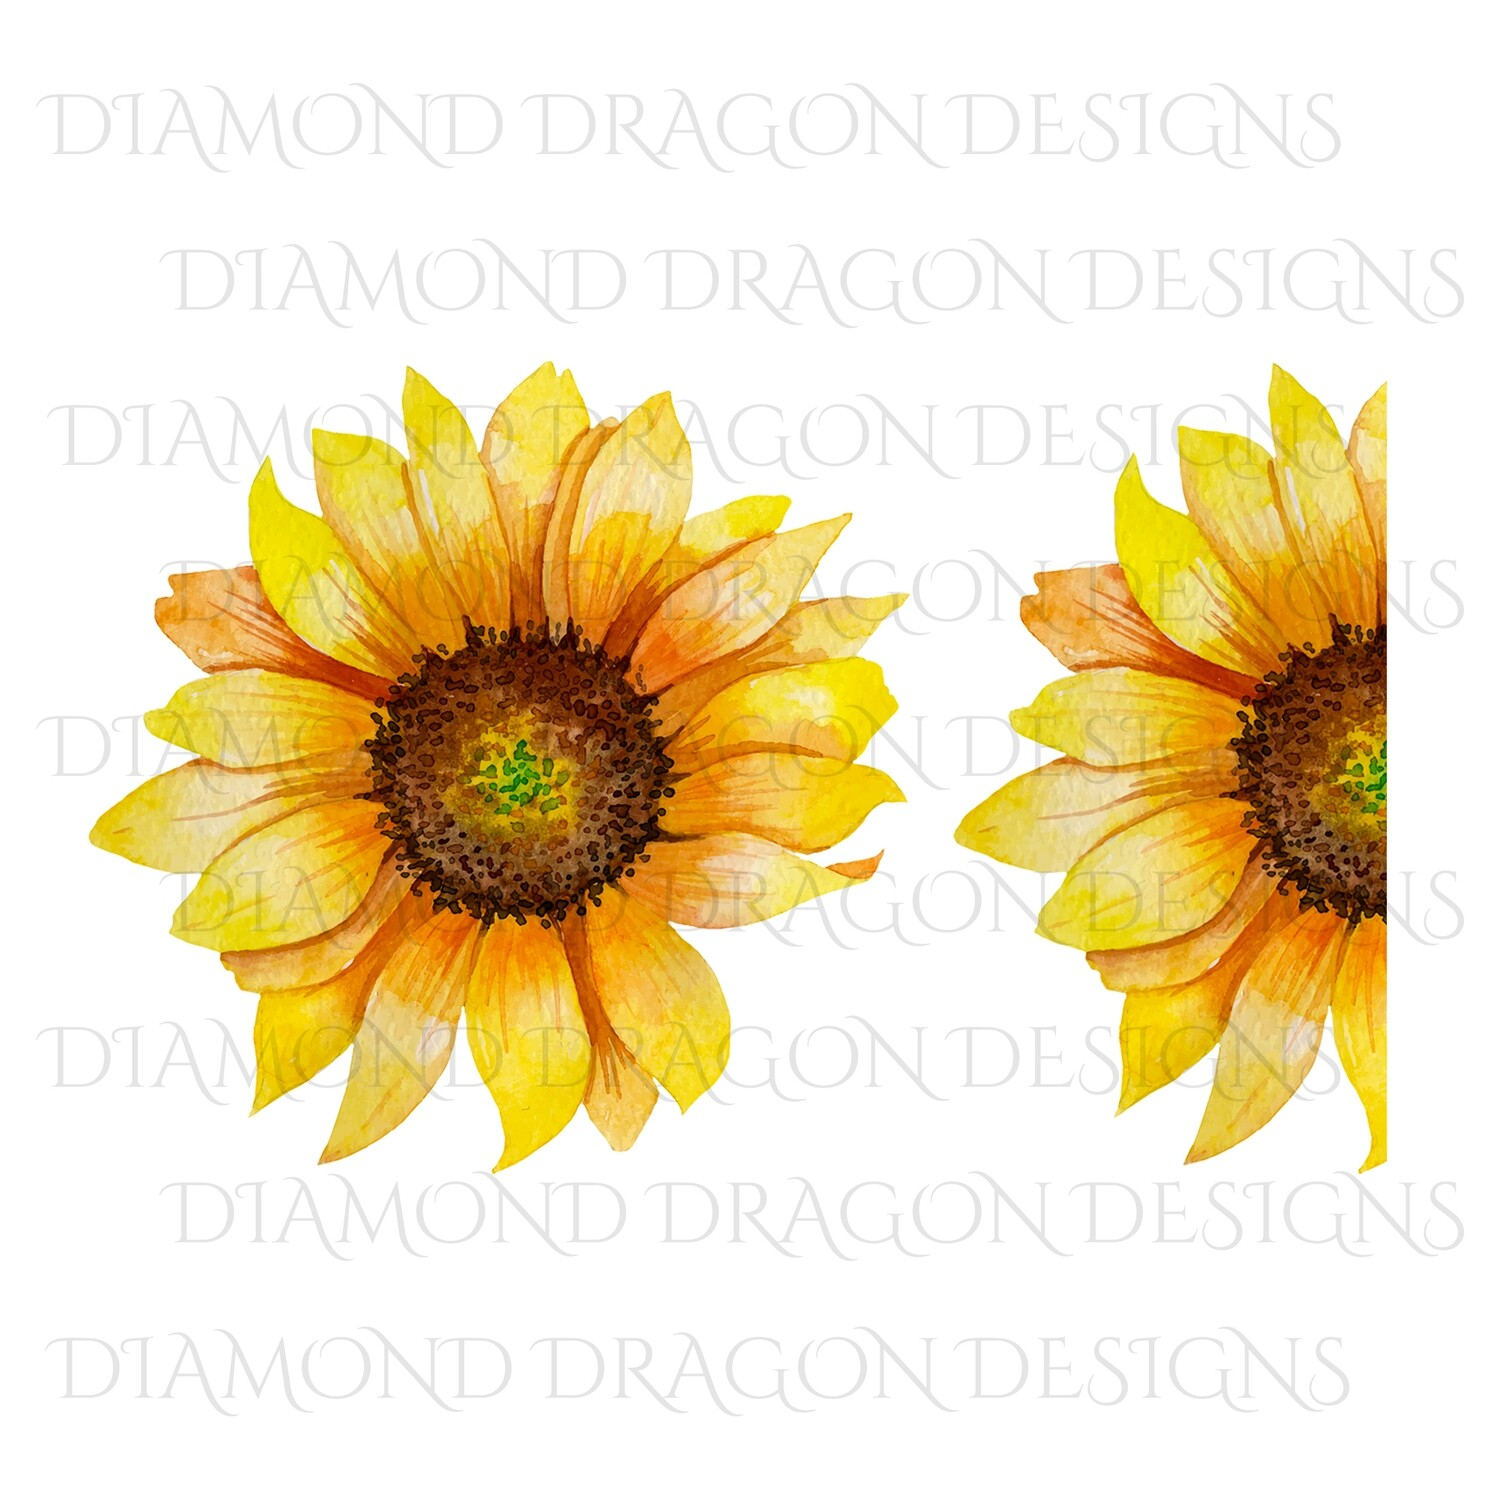 Sunflowers - Whole Sunflower, Half Sunflower, 2 Image Bundle, Watercolor Sunflower